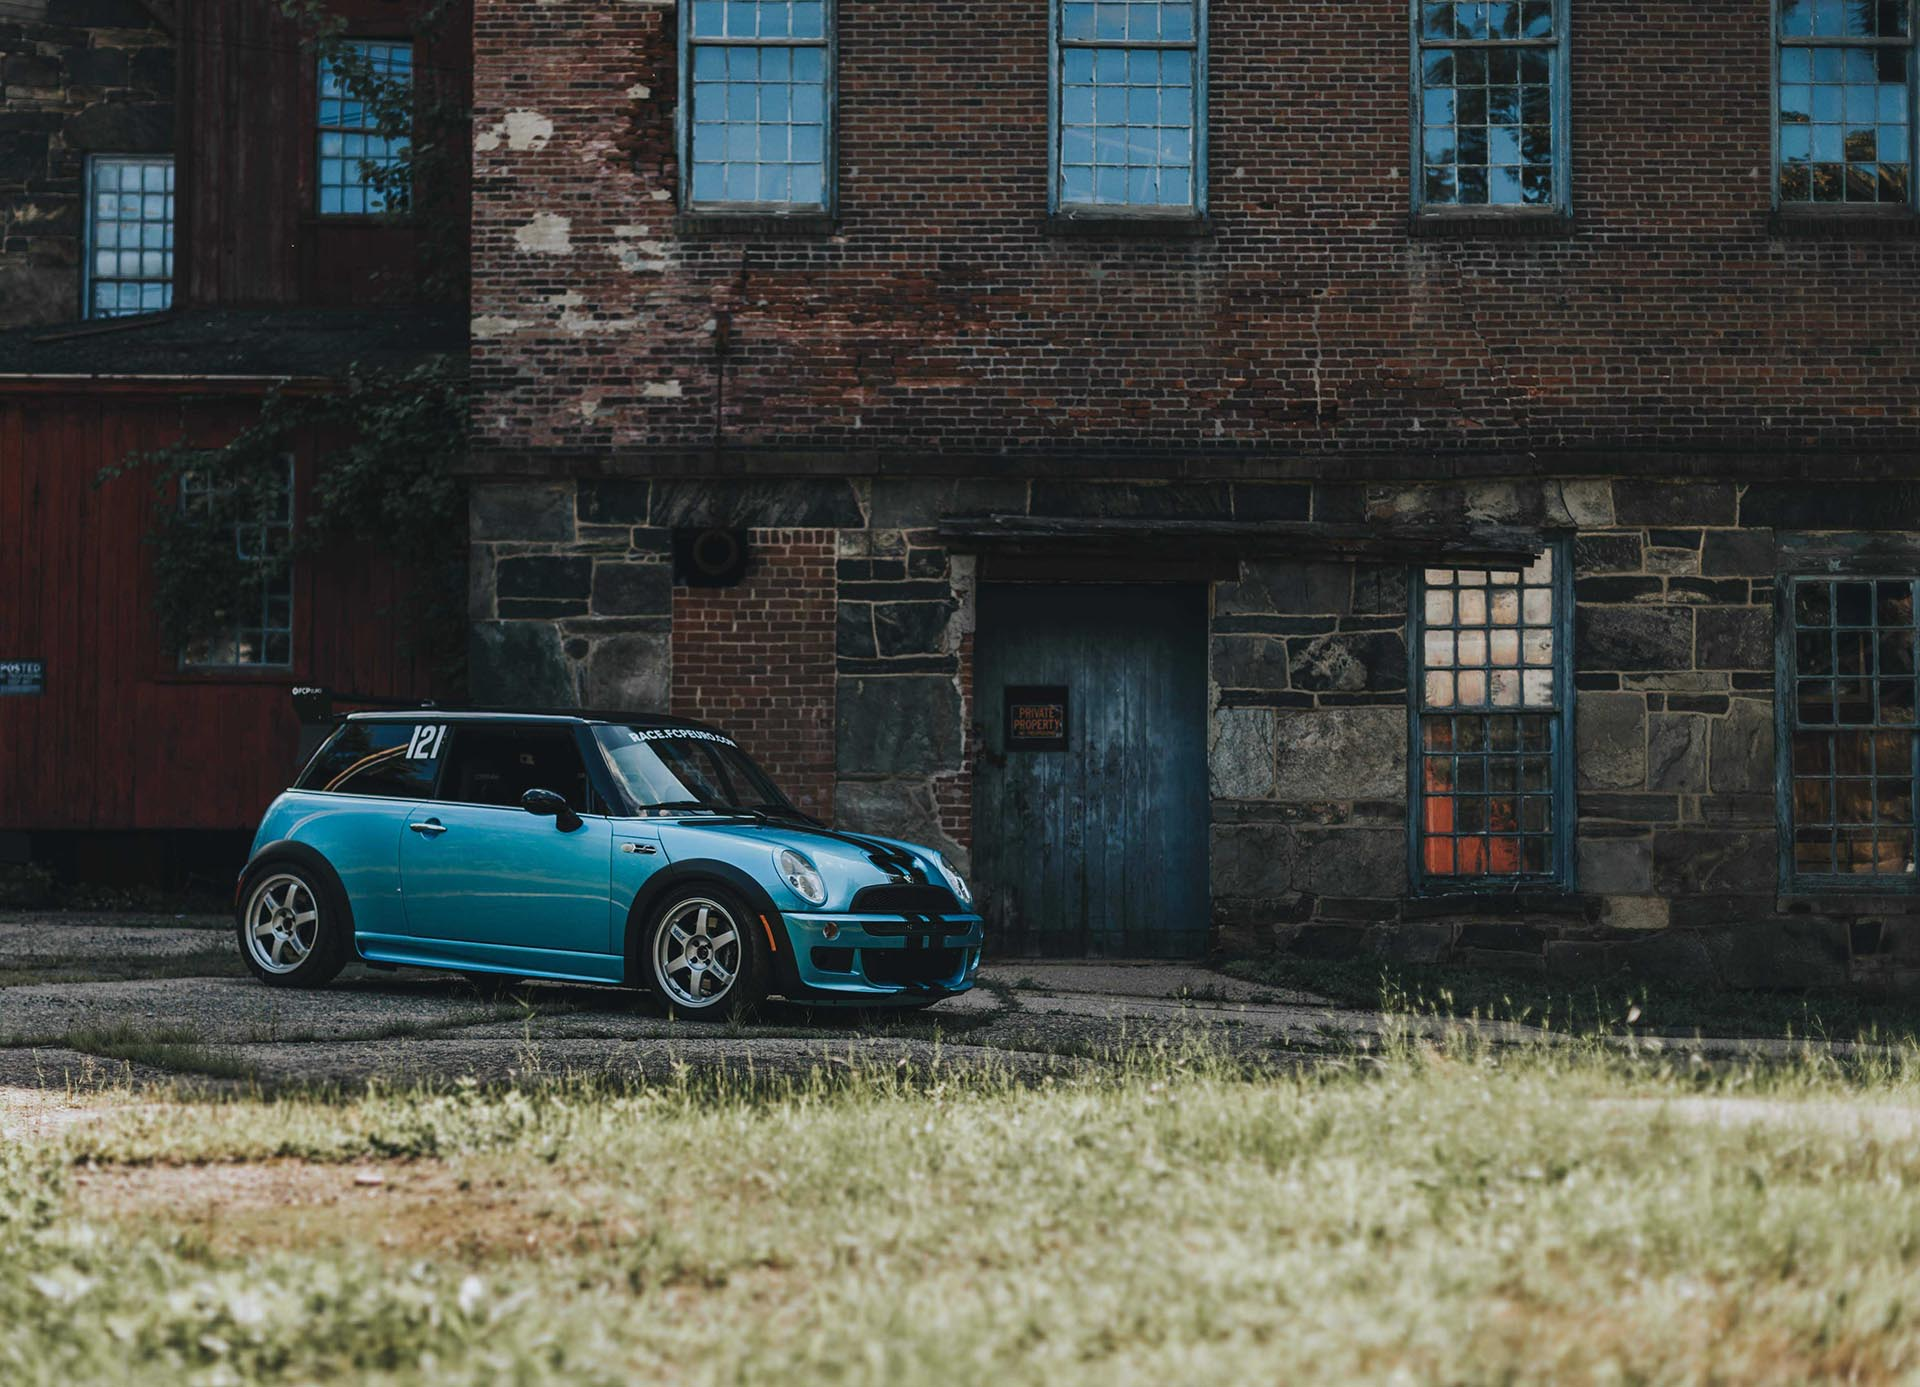 05_MINI Cooper S R52 Electric Blue front